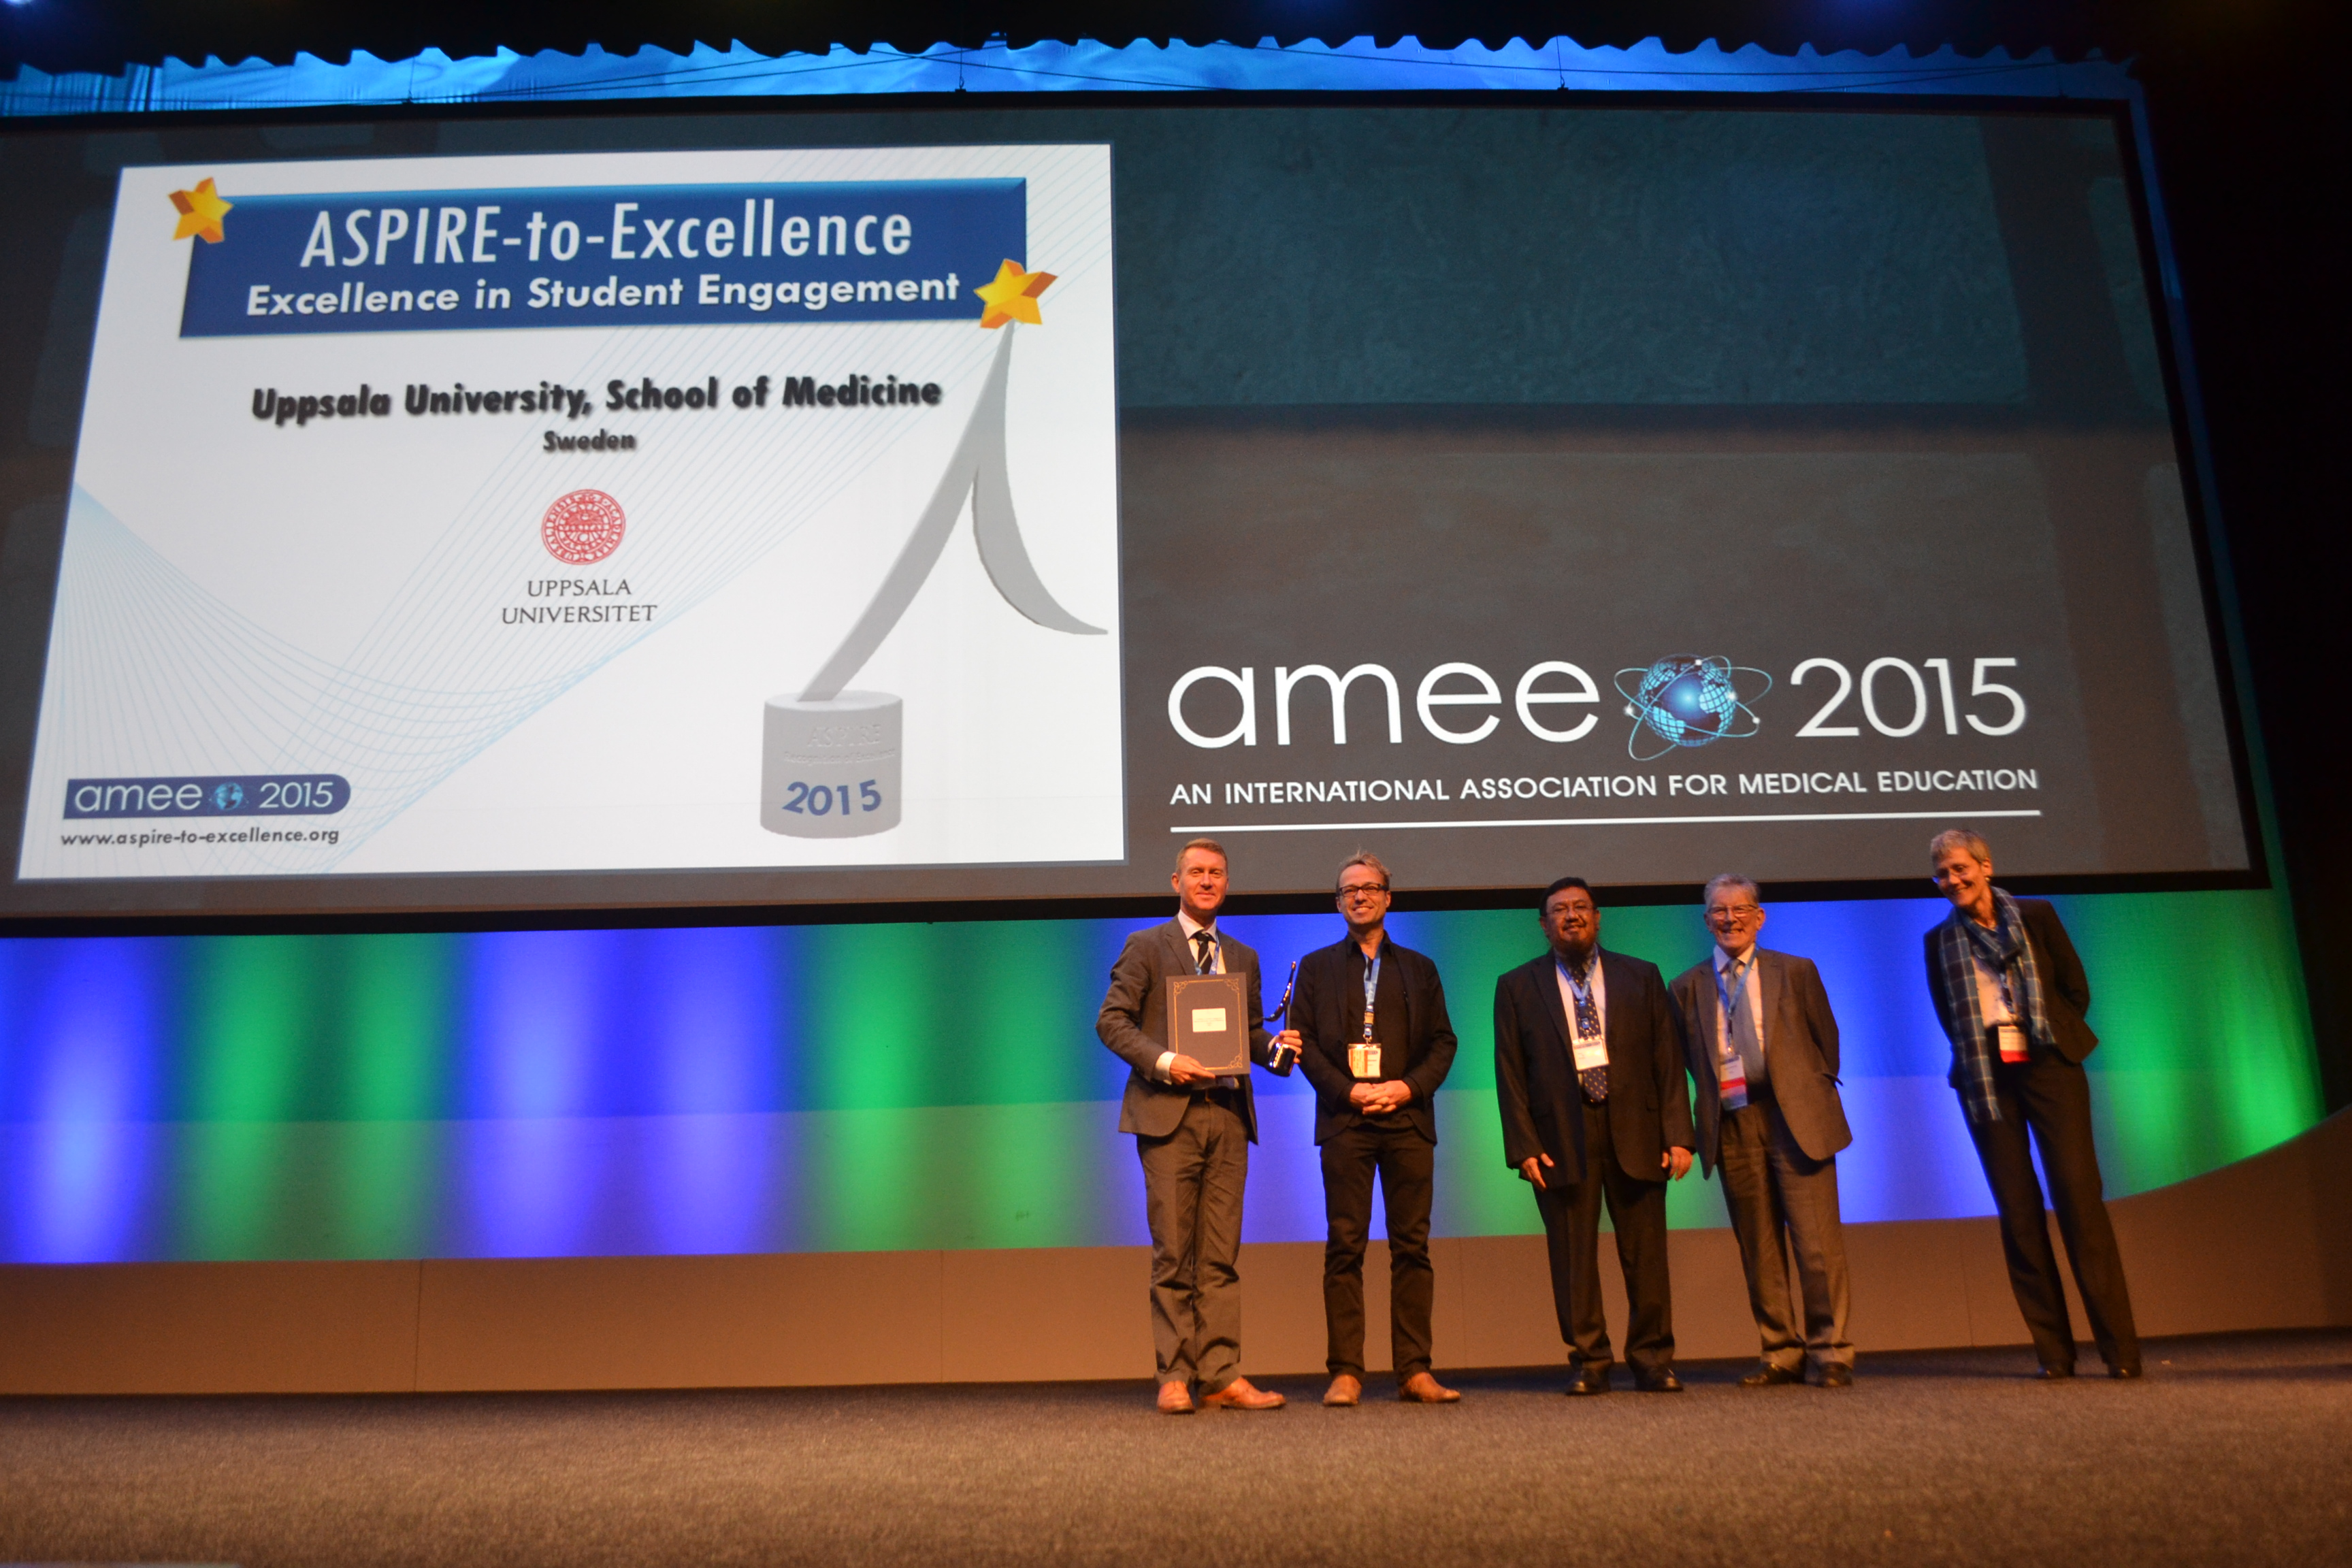 AMEE 2015 - ASPIRE-to-Excellence Student Awards - 037_Uppsala.JPG